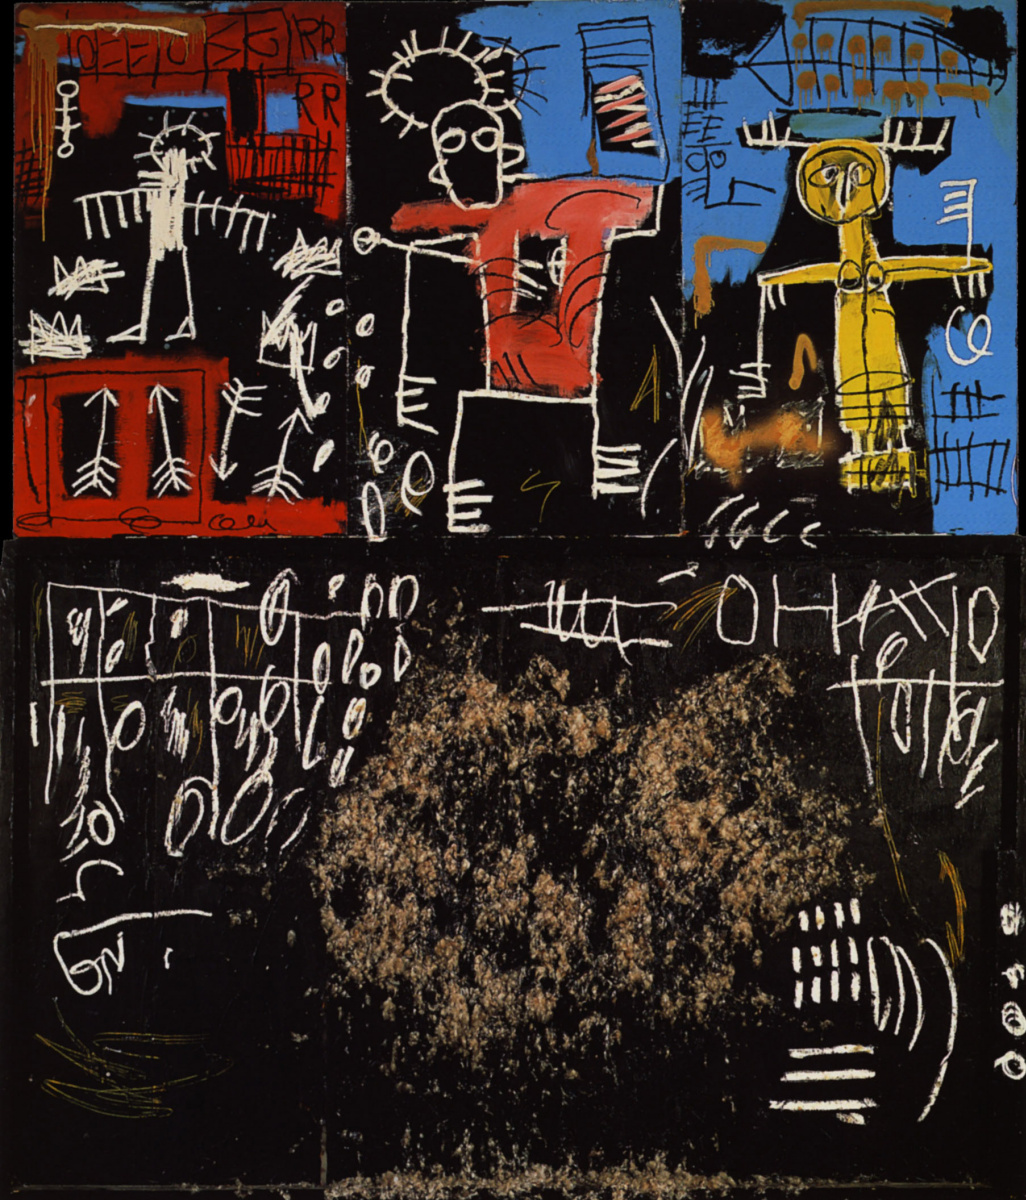 the influence of jazz music in the works of jean michel basquiat and stuart davis See more ideas about jean michel basquiat  artists that inspire blues music jazz blues music music jazz musicians jazz artists miles davis blue train my.